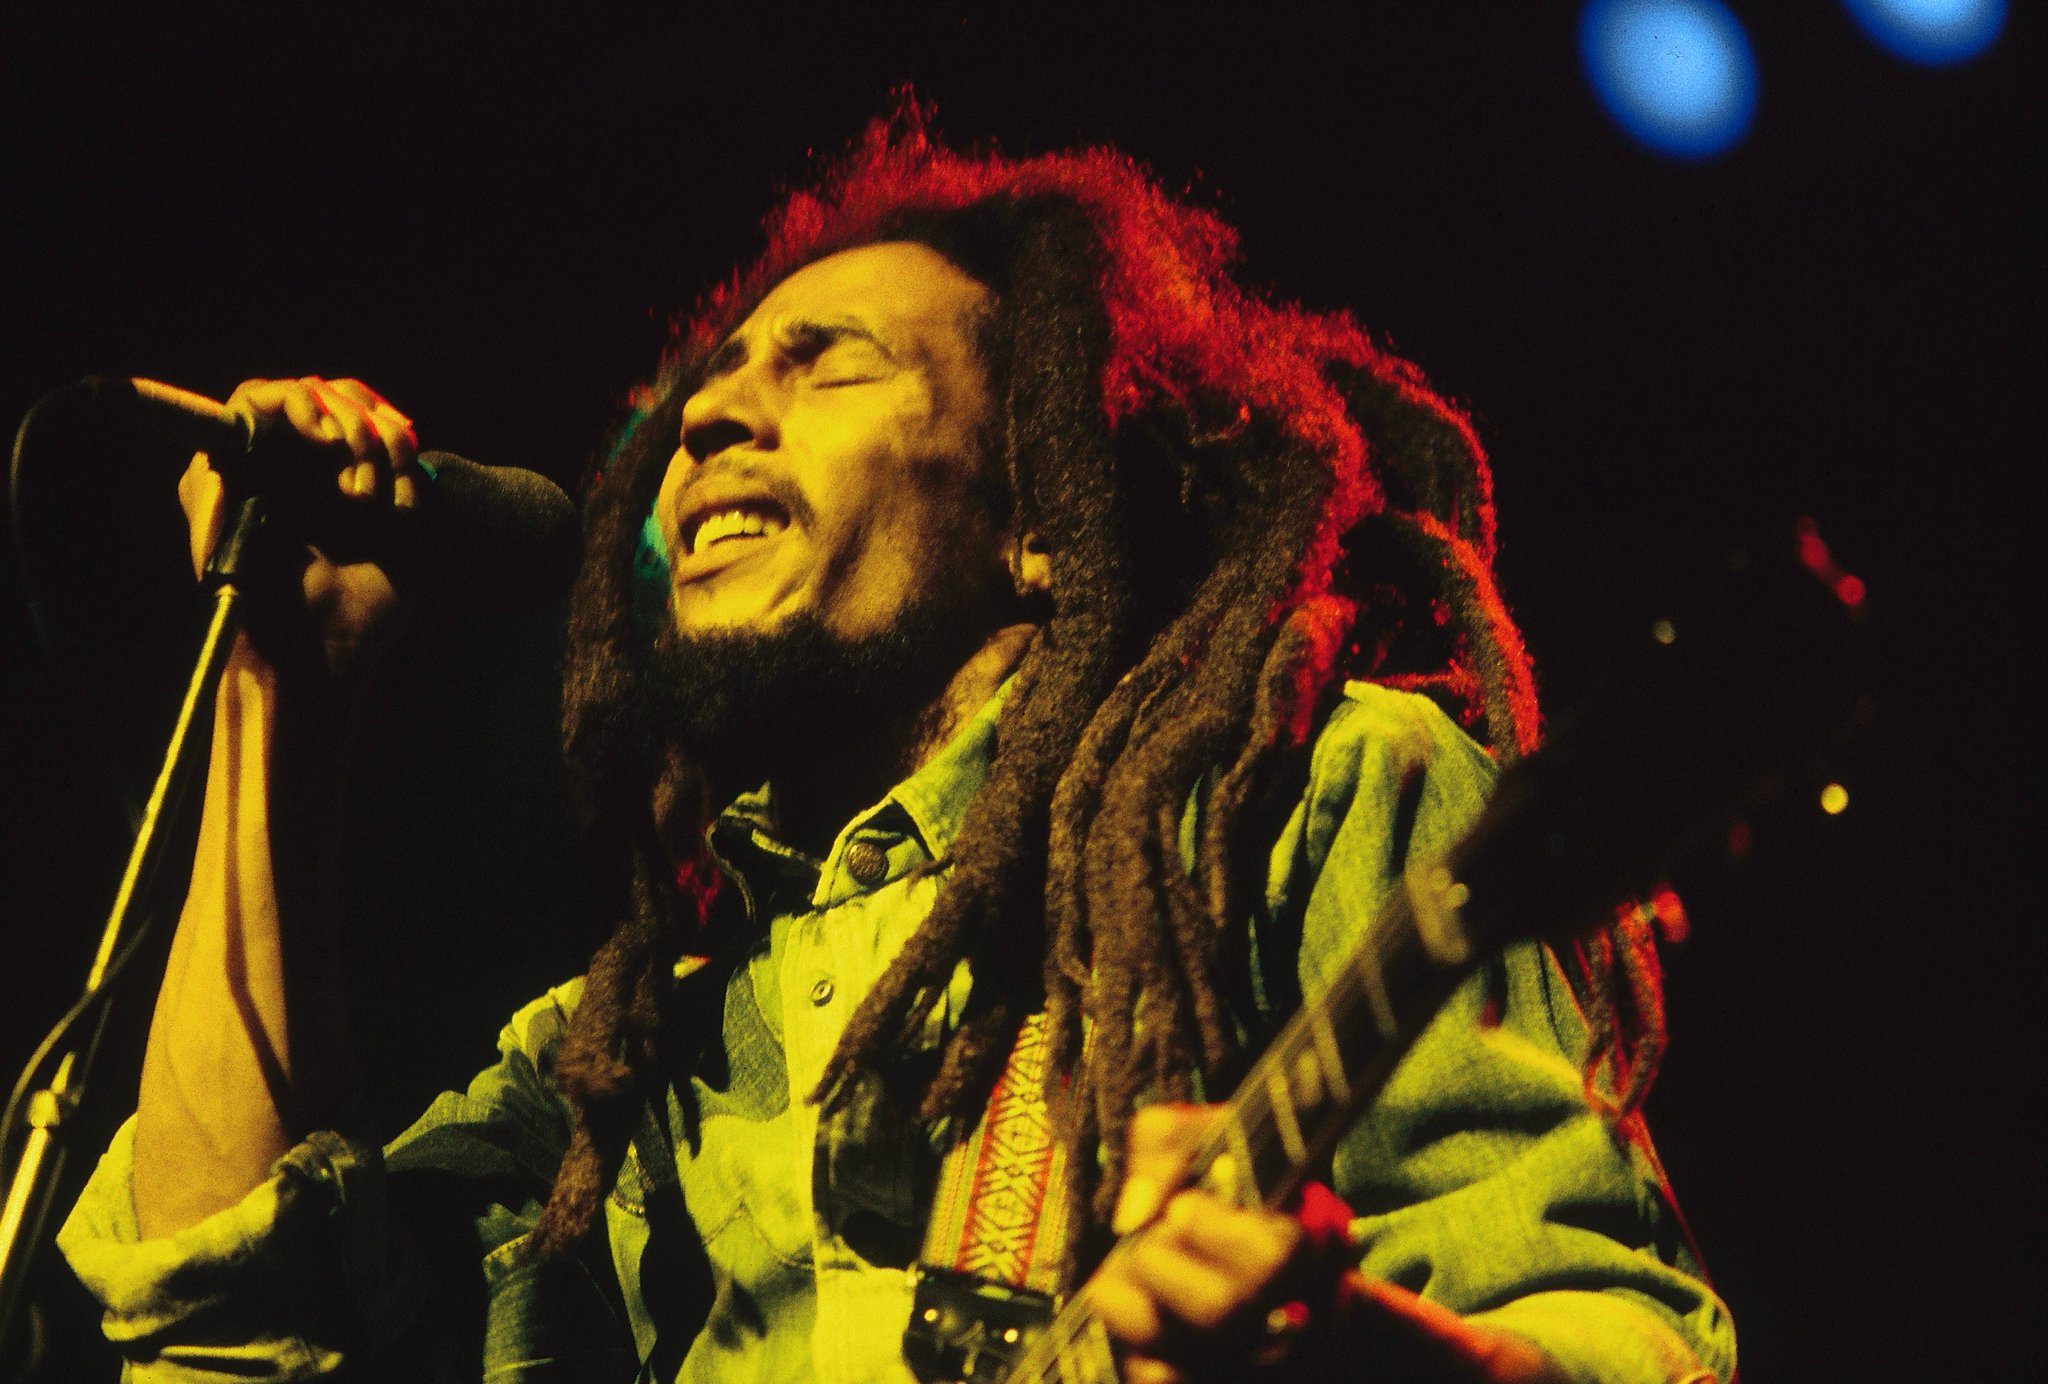 Happy Birthday Bob Marley, who would have turned 74 today.